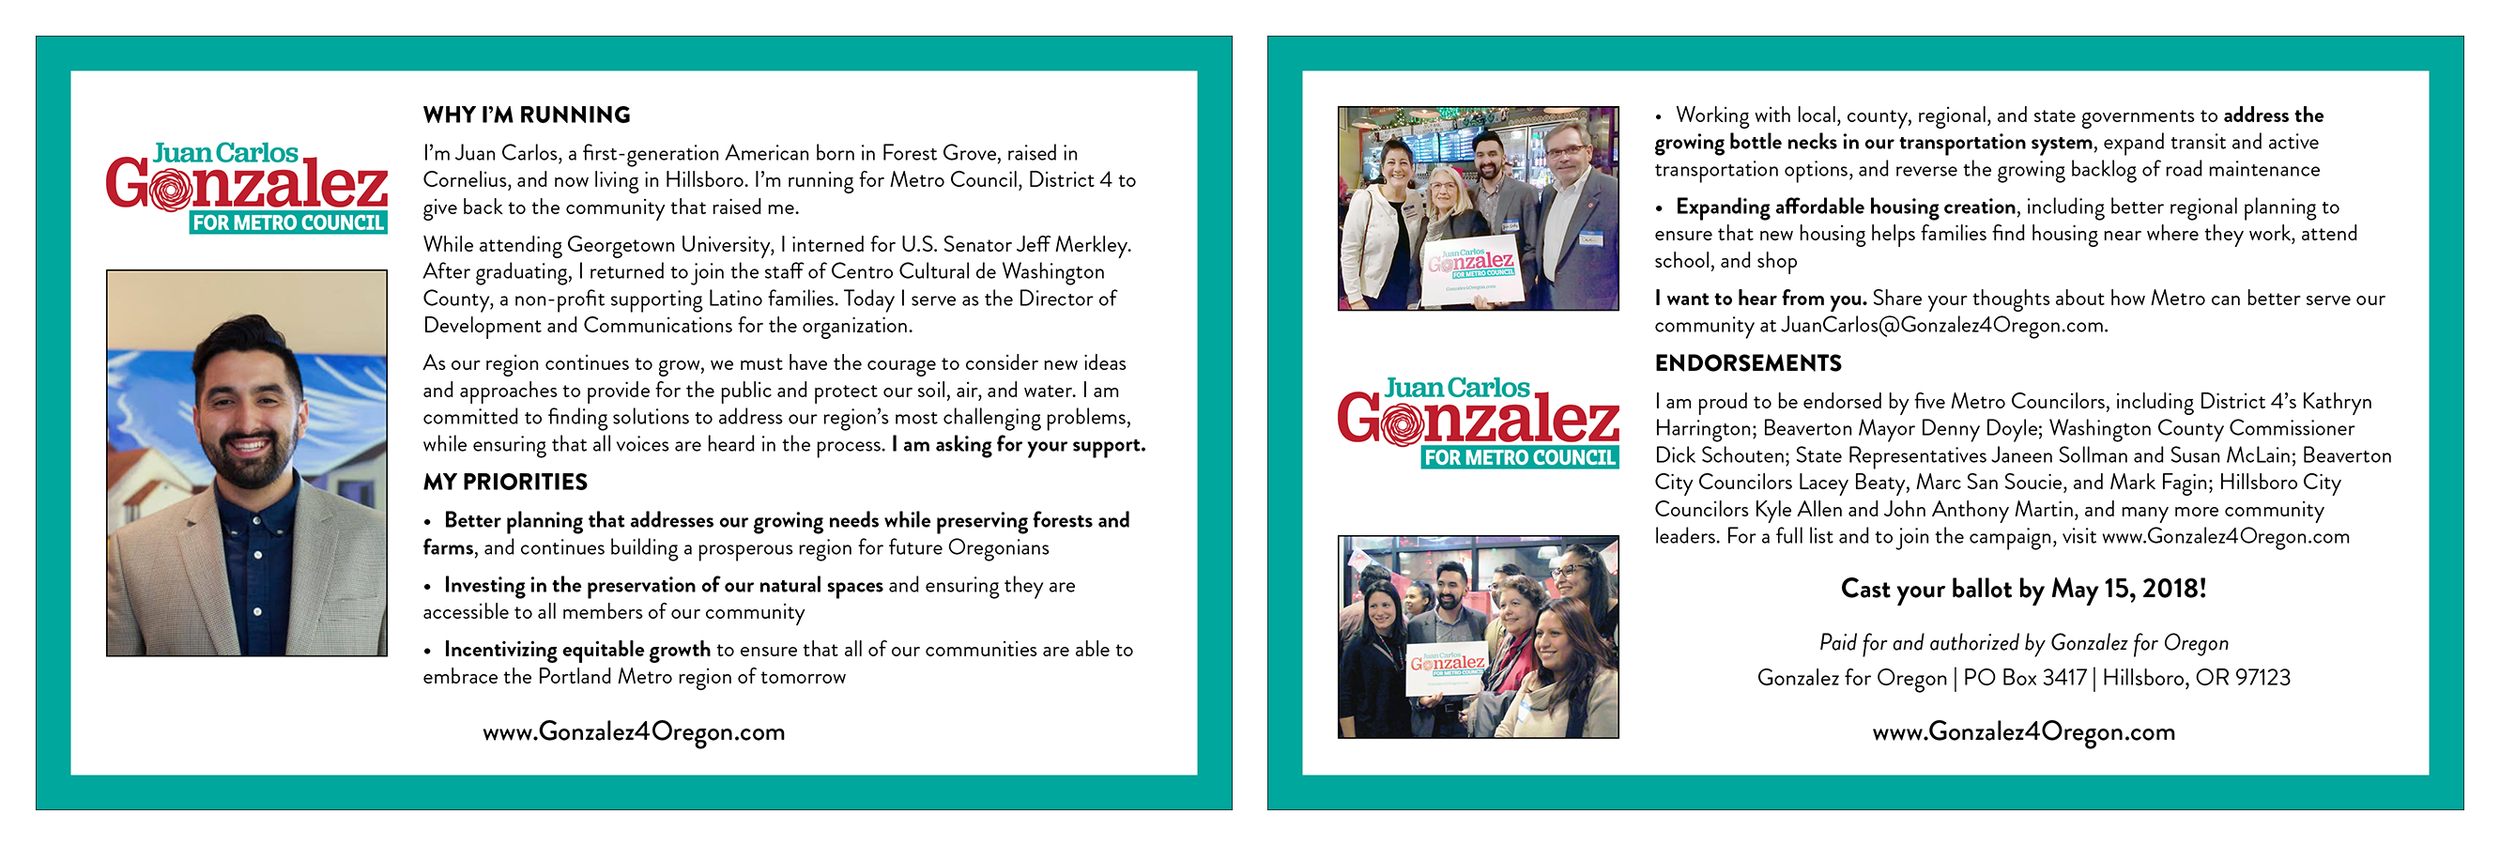 Juan Carlos Gonzalez for Metro Council canvassing collateral